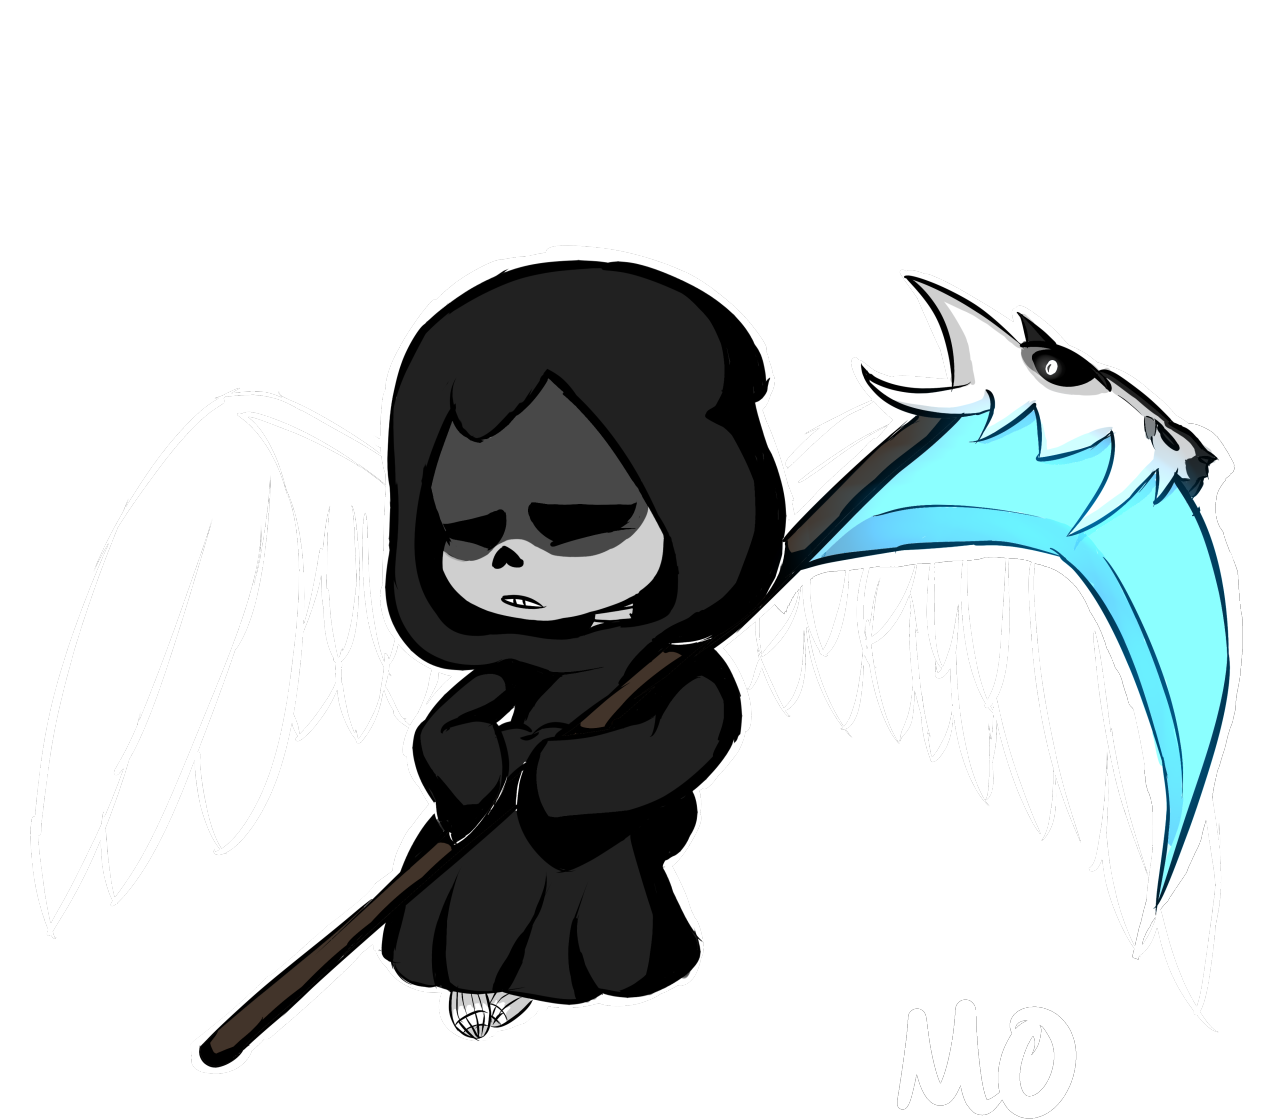 Transparent reaper sans. Always liked the thought